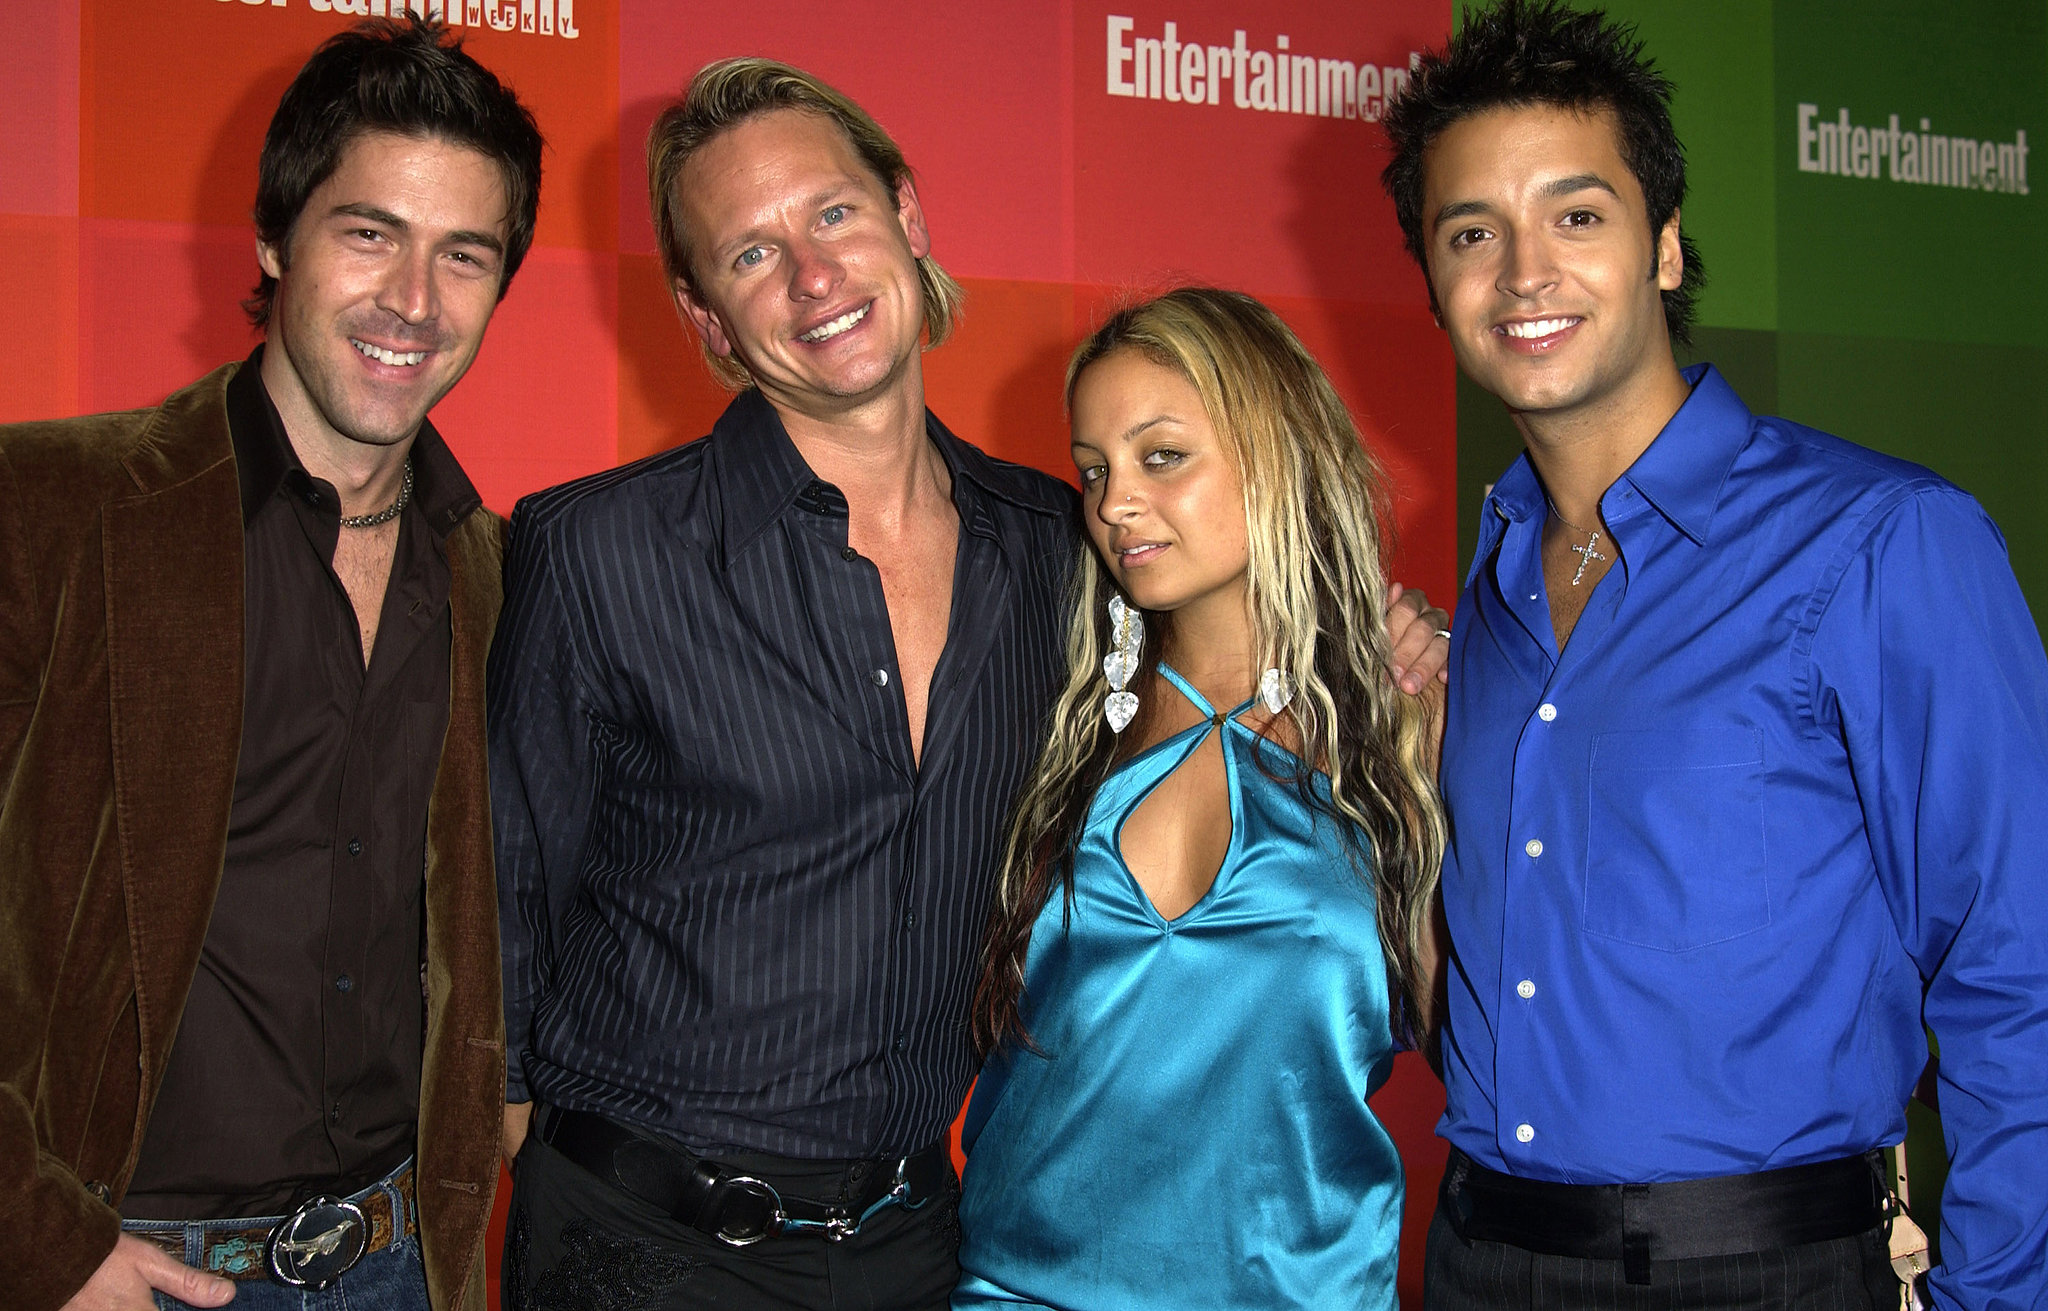 Nicole Richie hit up a pre-Emmys party in September 2003 and posed for photos with some cast members from Queer Eye For the Straight Guy (remember that show?).